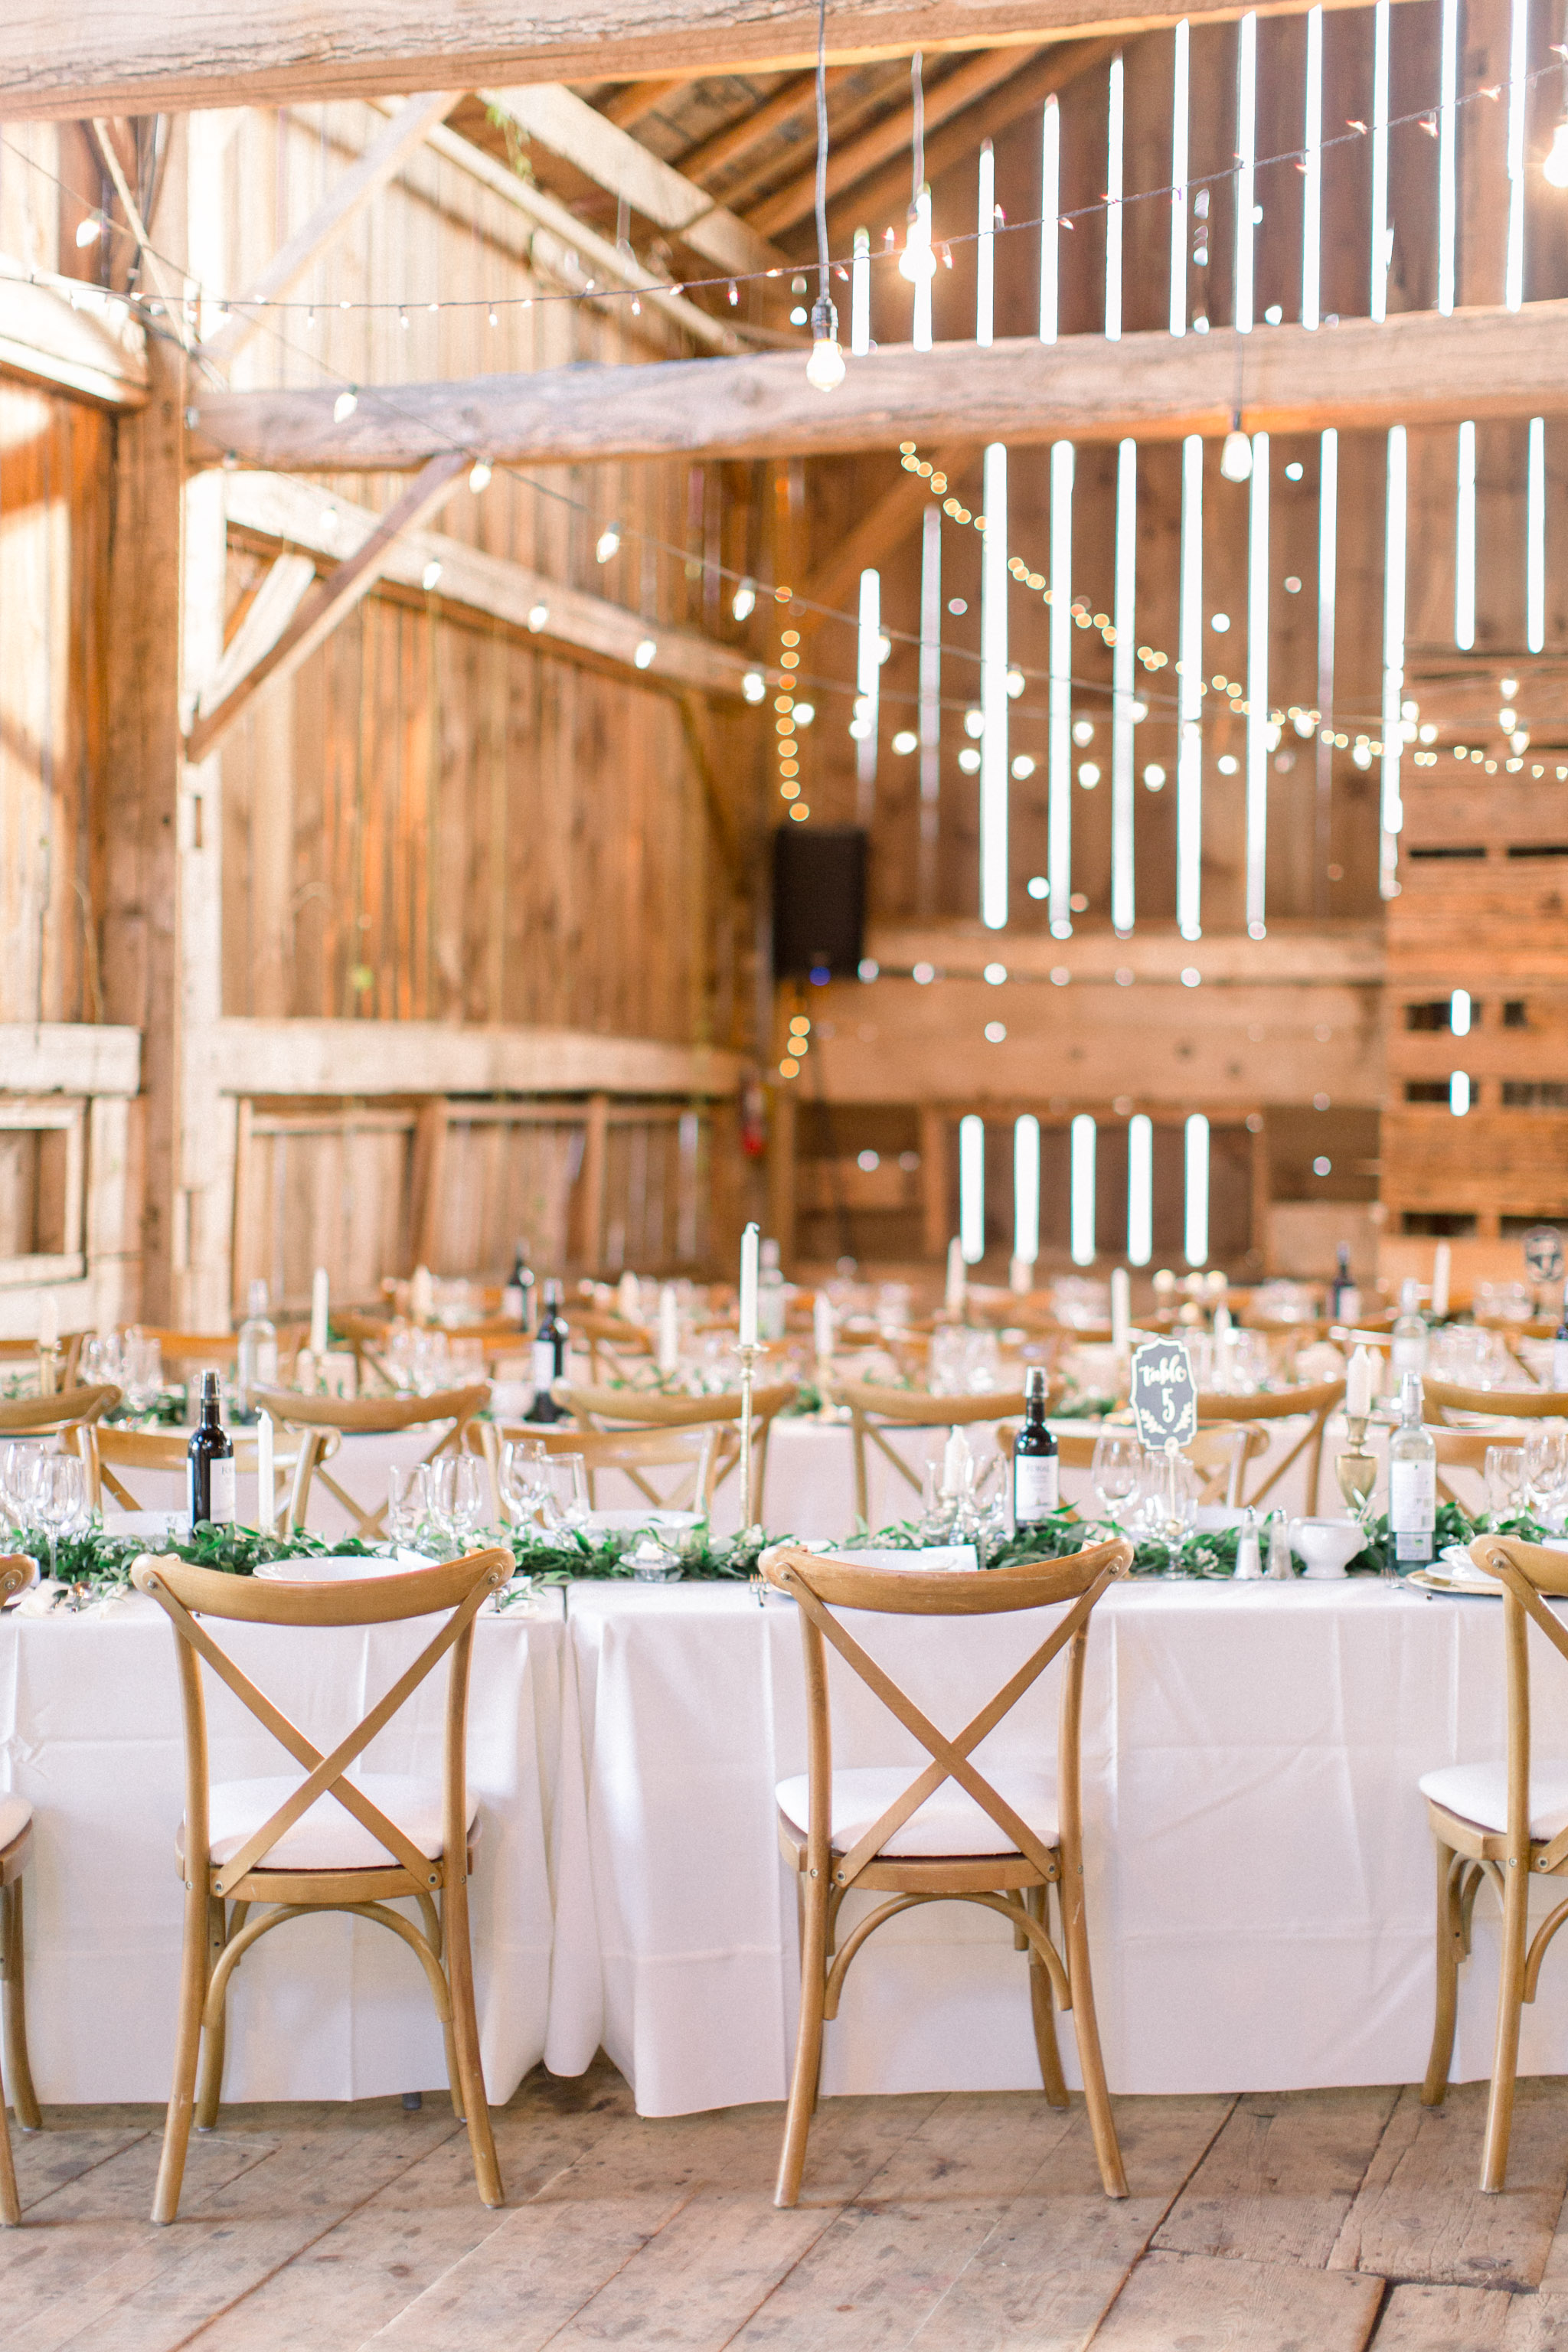 White and green wedding decor inspiration.